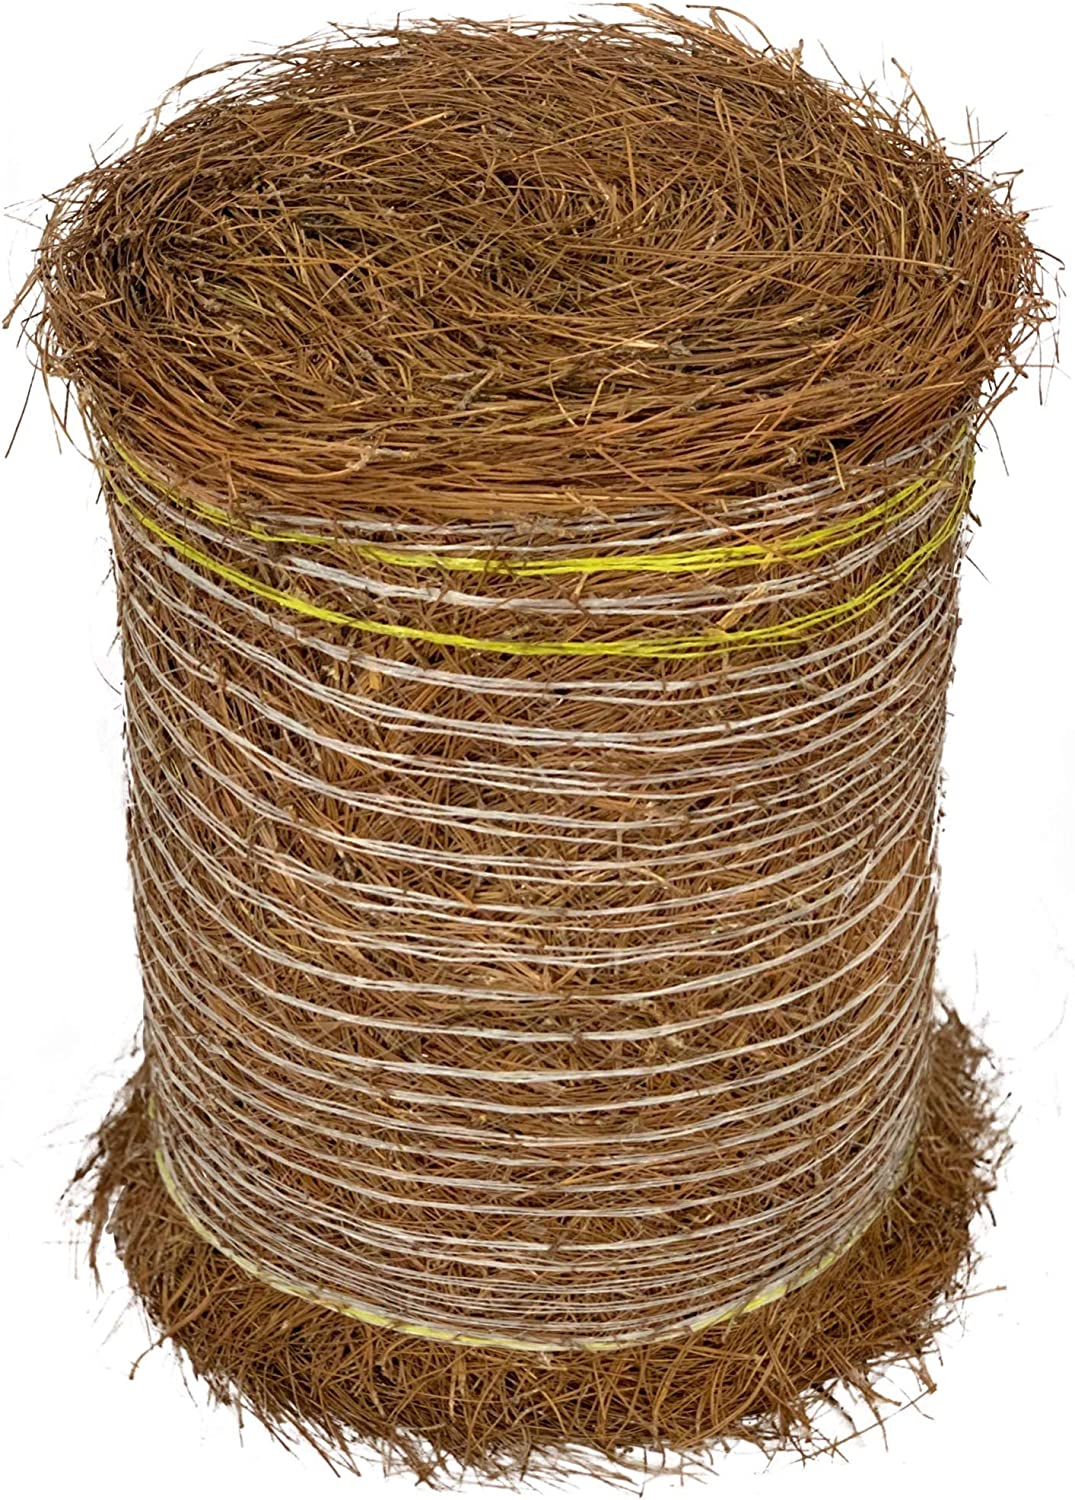 Longleaf Pine Straw 激安通販ショッピング 全品送料無料 Roll for Non-Colored - Landscaping Covers